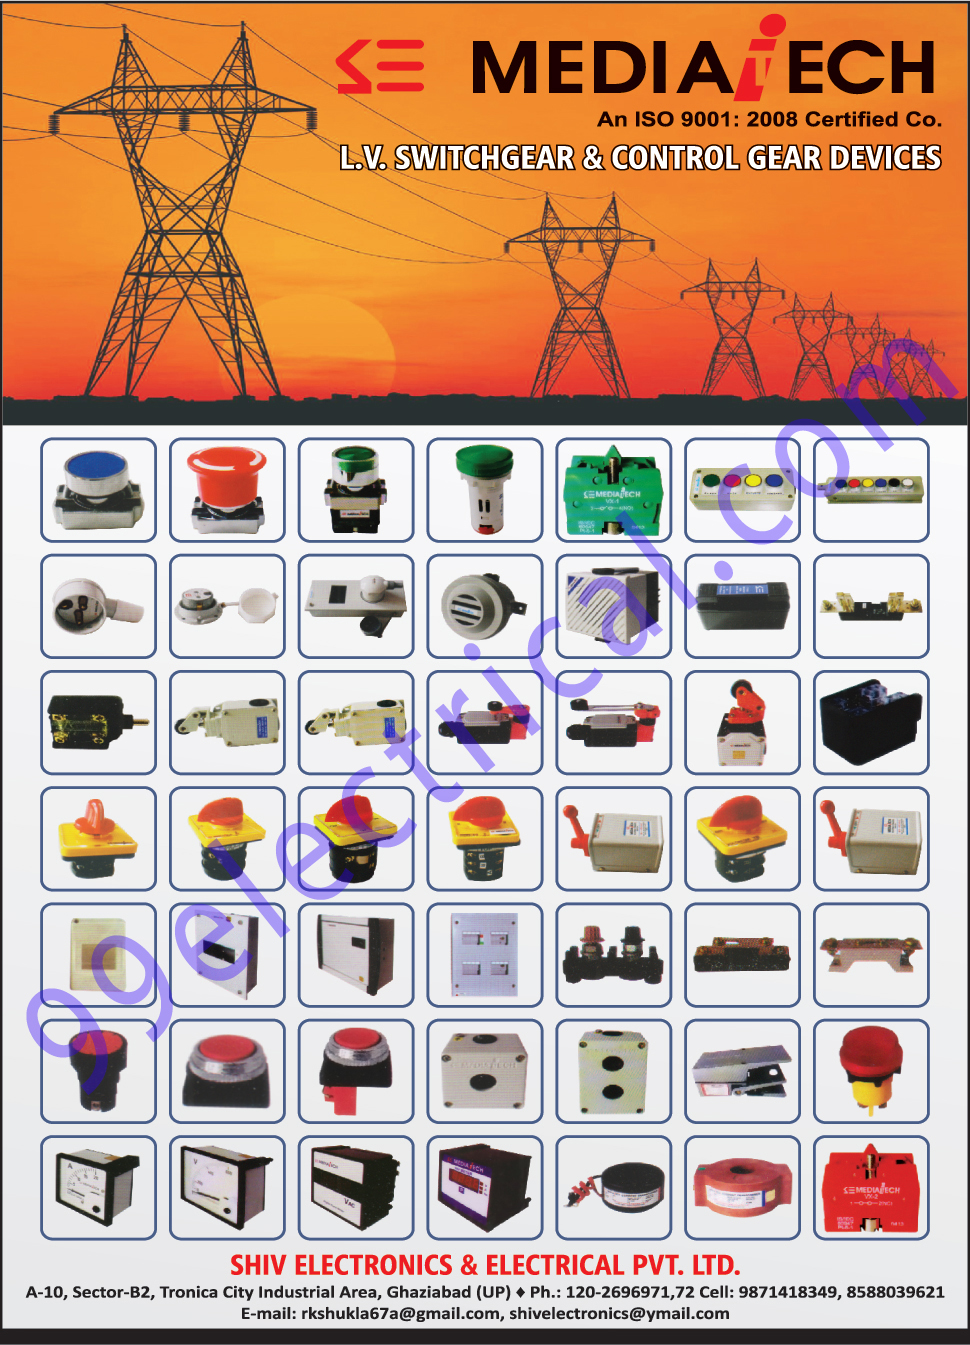 LV Switchgear, Control Gear Devices,Electrical Parts, Measuring Instruments, Connection Plate, Limit Switches, Panel Board Accessories, Push Button Stations, Plugs, Socket, HRC Fuse Fitting, Metal Clad Plugs, Metal Clad Sockets, Industrial Hooters, Electronic Buzzers, Electrical Accessories